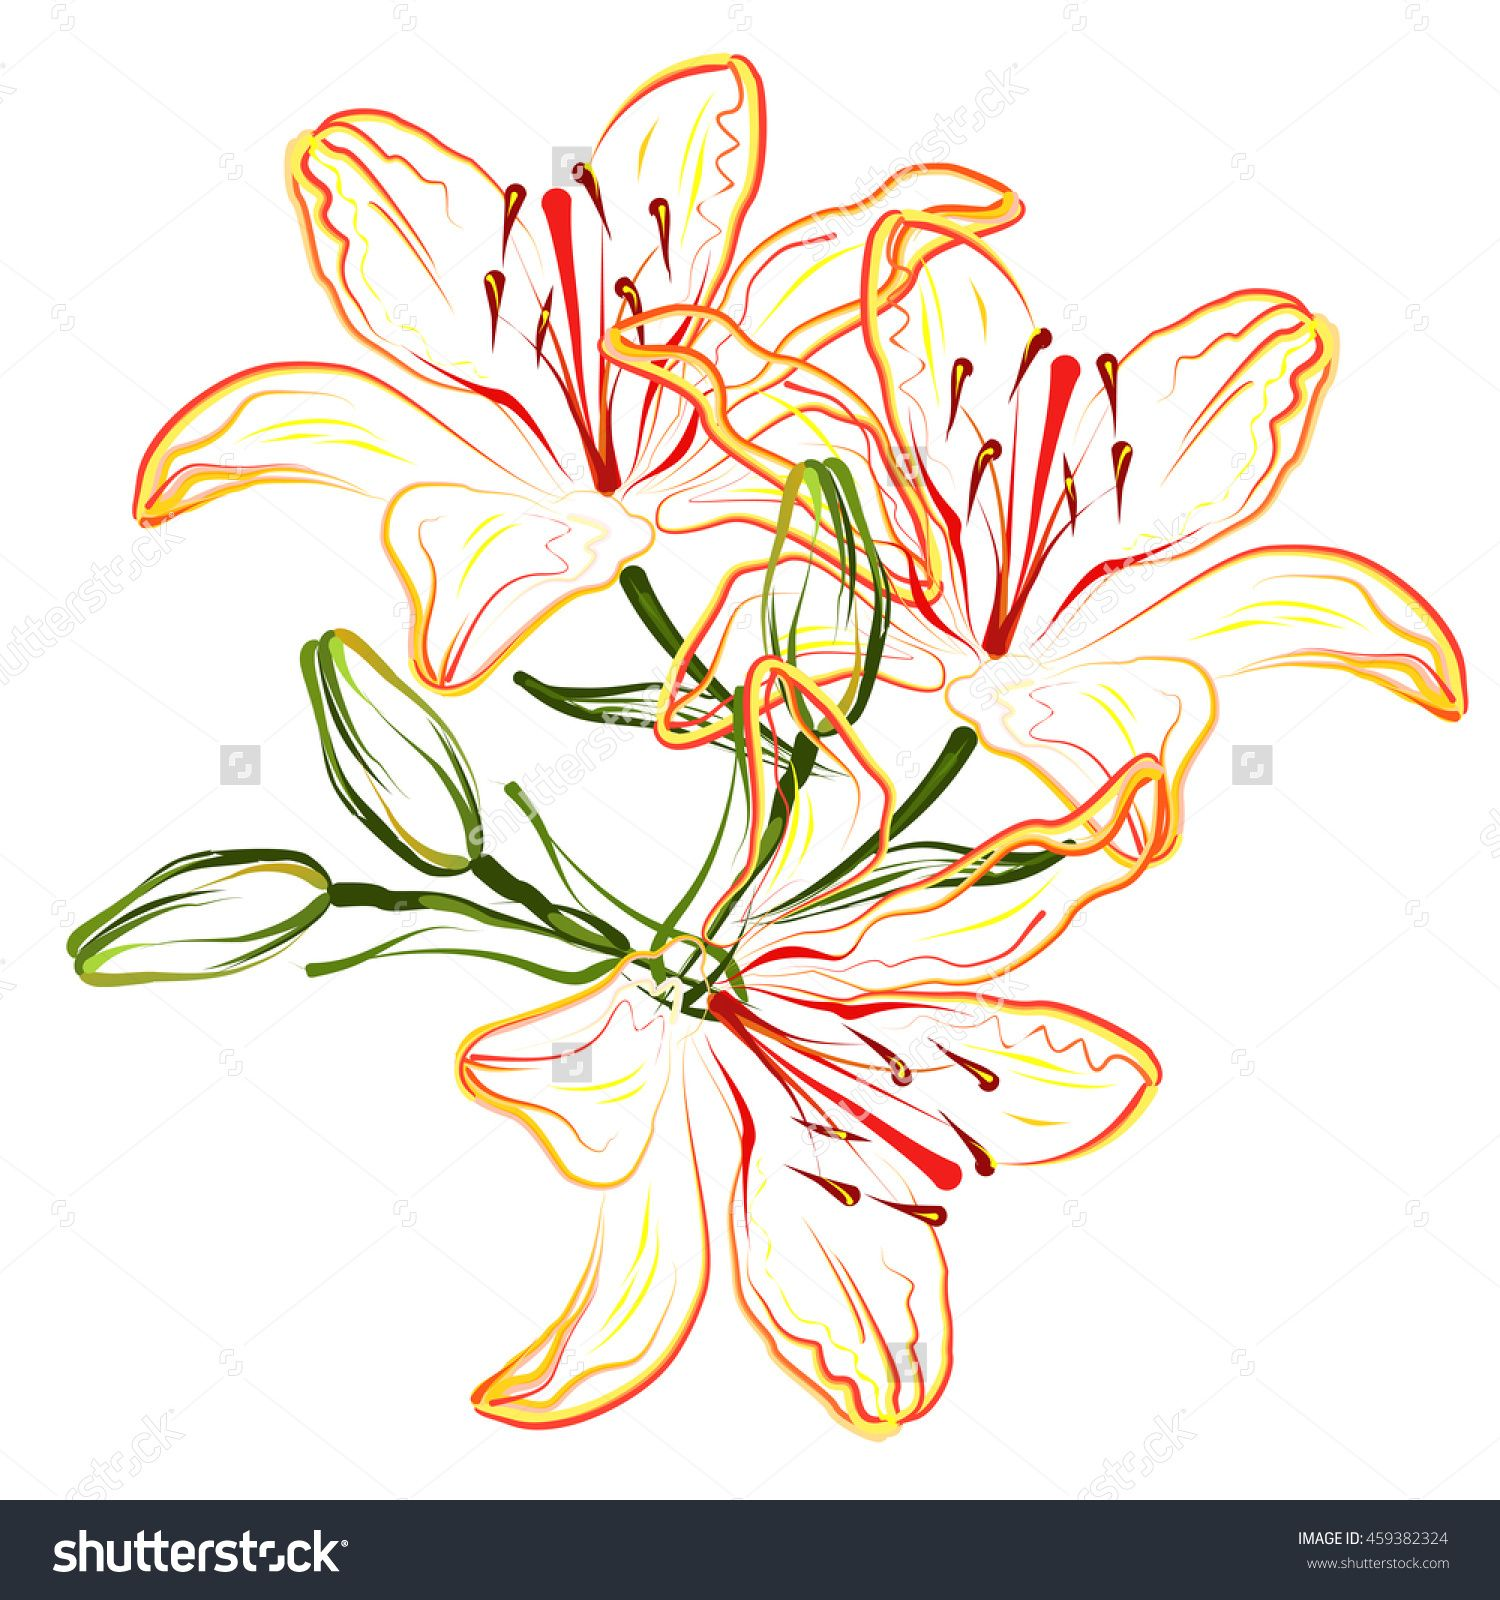 Orange lily hand drawn stylized color vector brush sketch of lily hand drawn stylized color vector brush sketch of lily flowers for greeting cards kristyandbryce Gallery